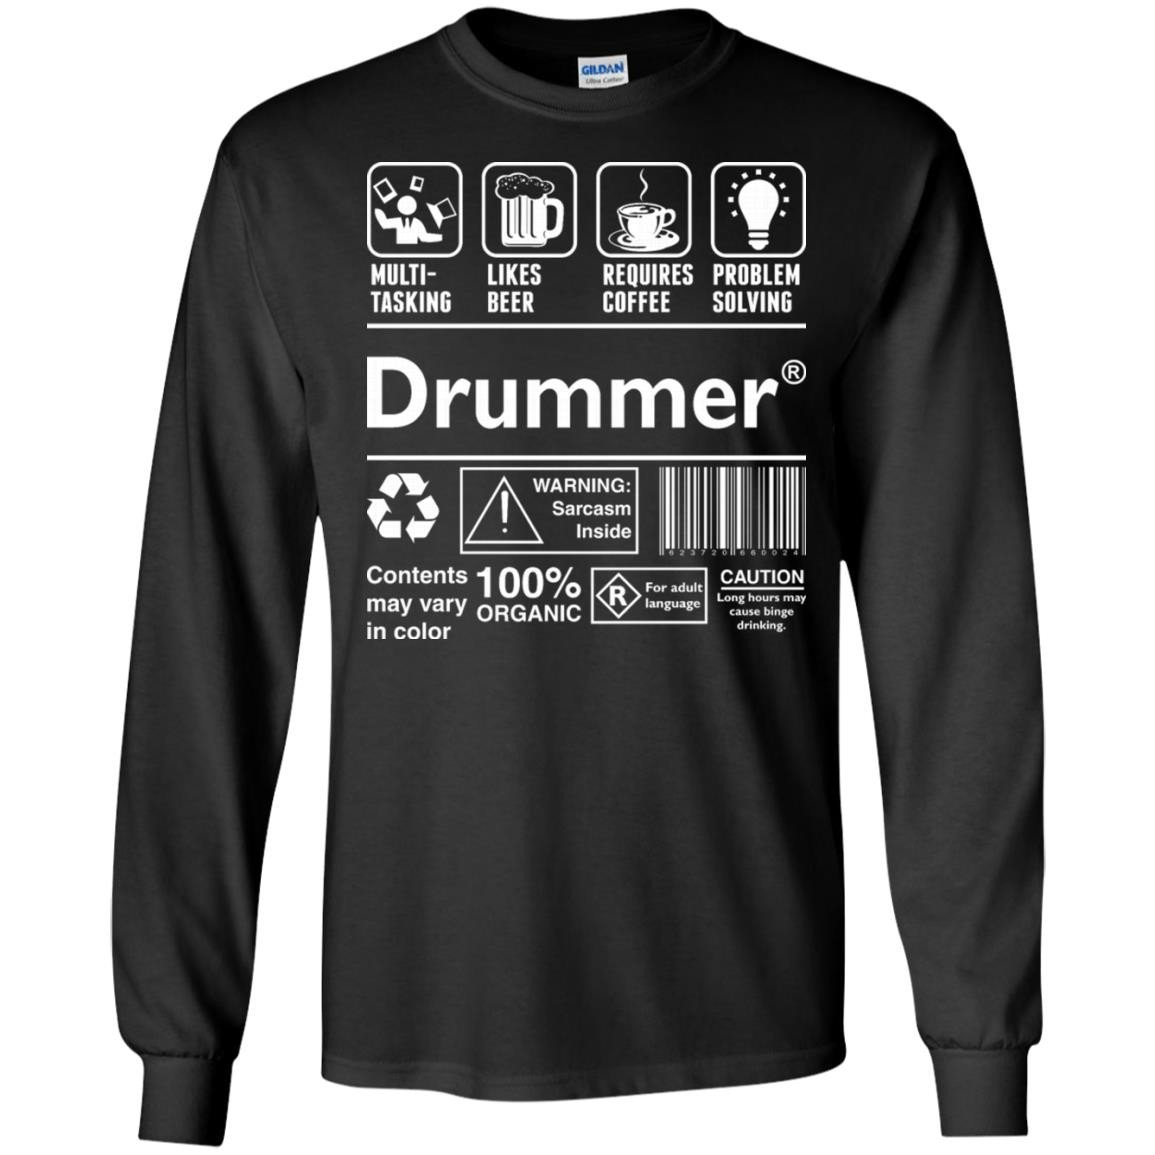 Drummer Multitasking Beer Coffee Problem Solving T-Shirt Long Sleeve 240